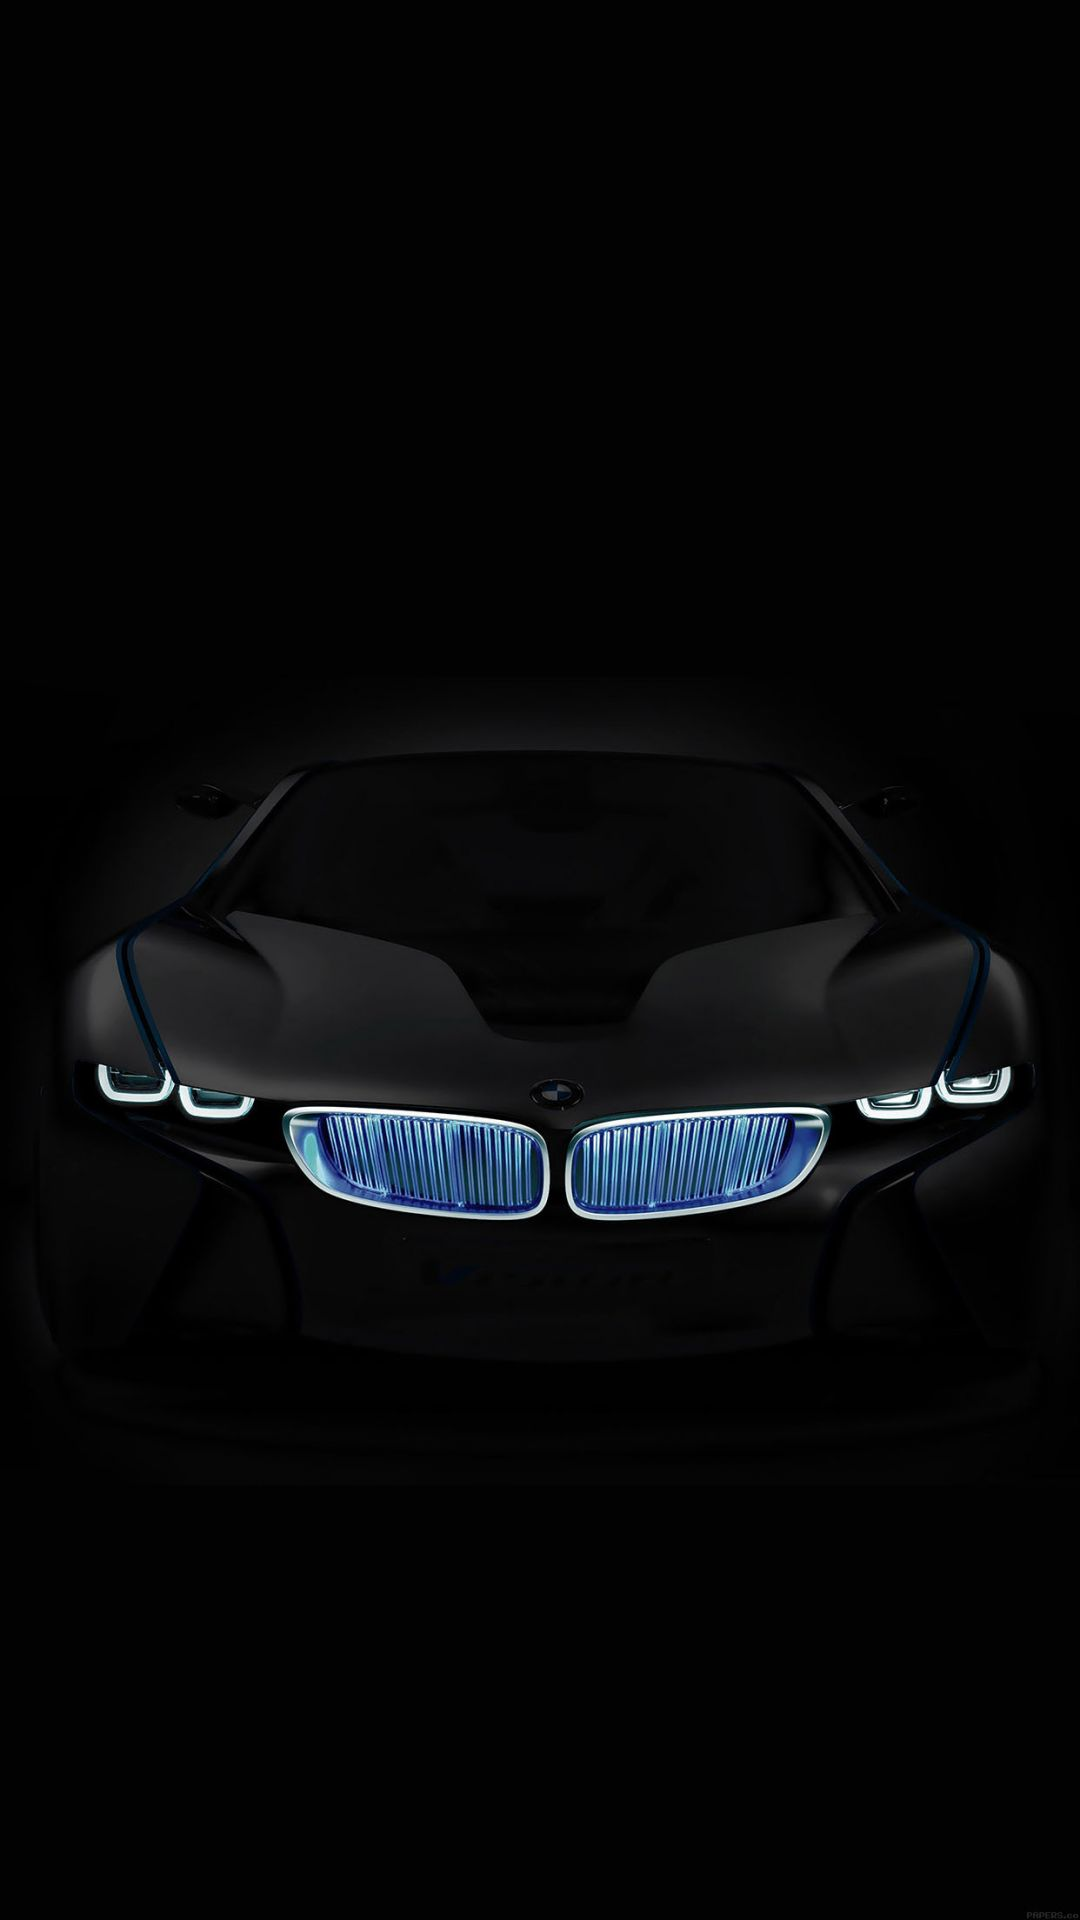 65 Bmw Logo Hd Android Iphone Desktop Hd Backgrounds Wallpapers 1080p 4k 1242x2208 2020